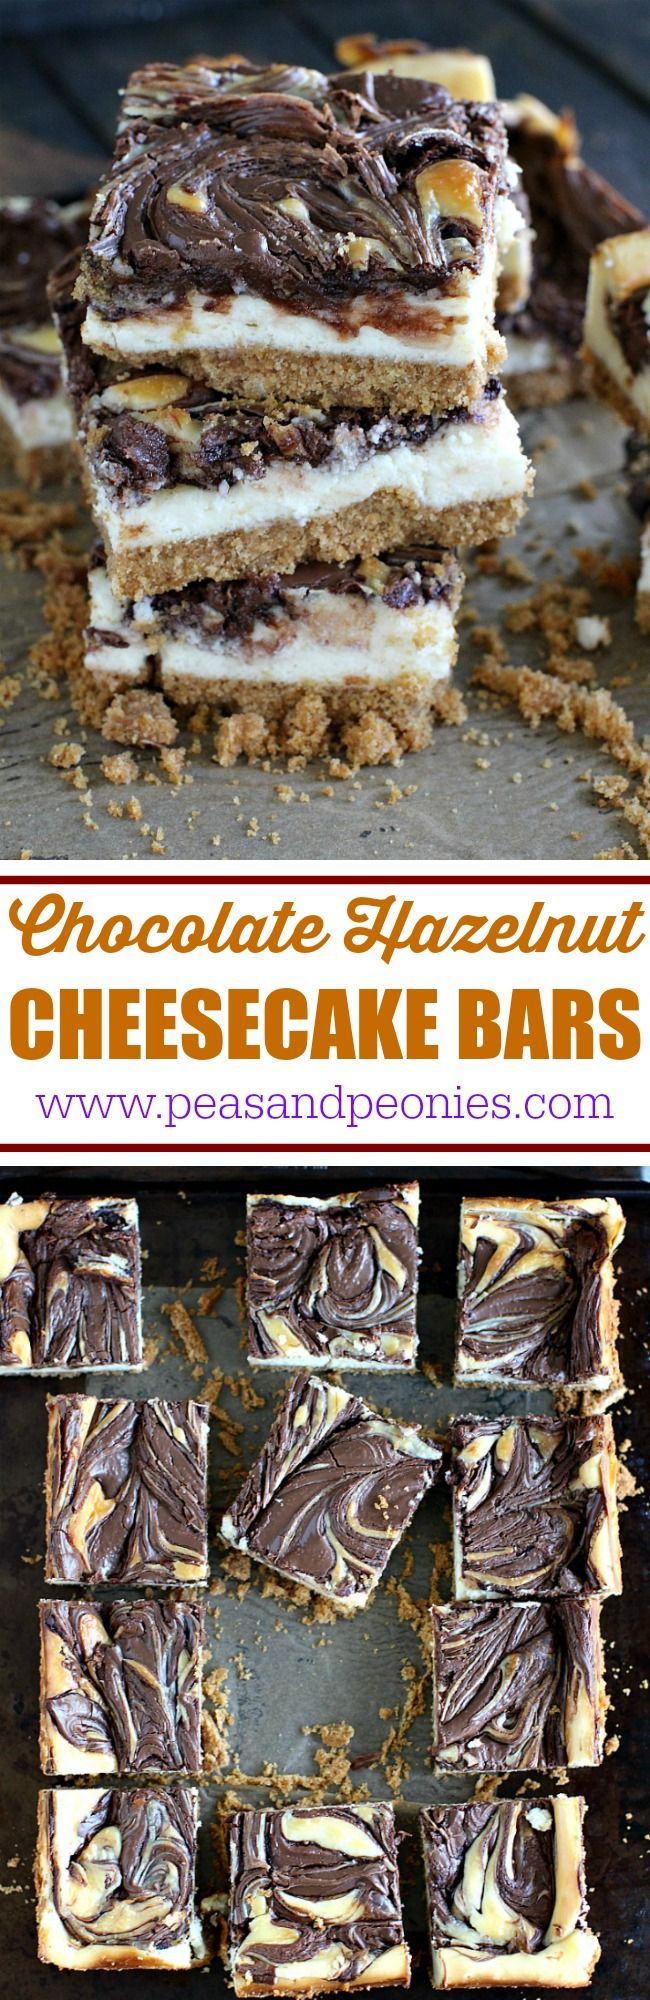 Chocolate Hazelnut Cheesecake Bars that are incredibly easy to make and a delight to eat with a honey graham crust and a hazelnut chocolate filling. @acmemarkets #MySignatureMoments #sponsored